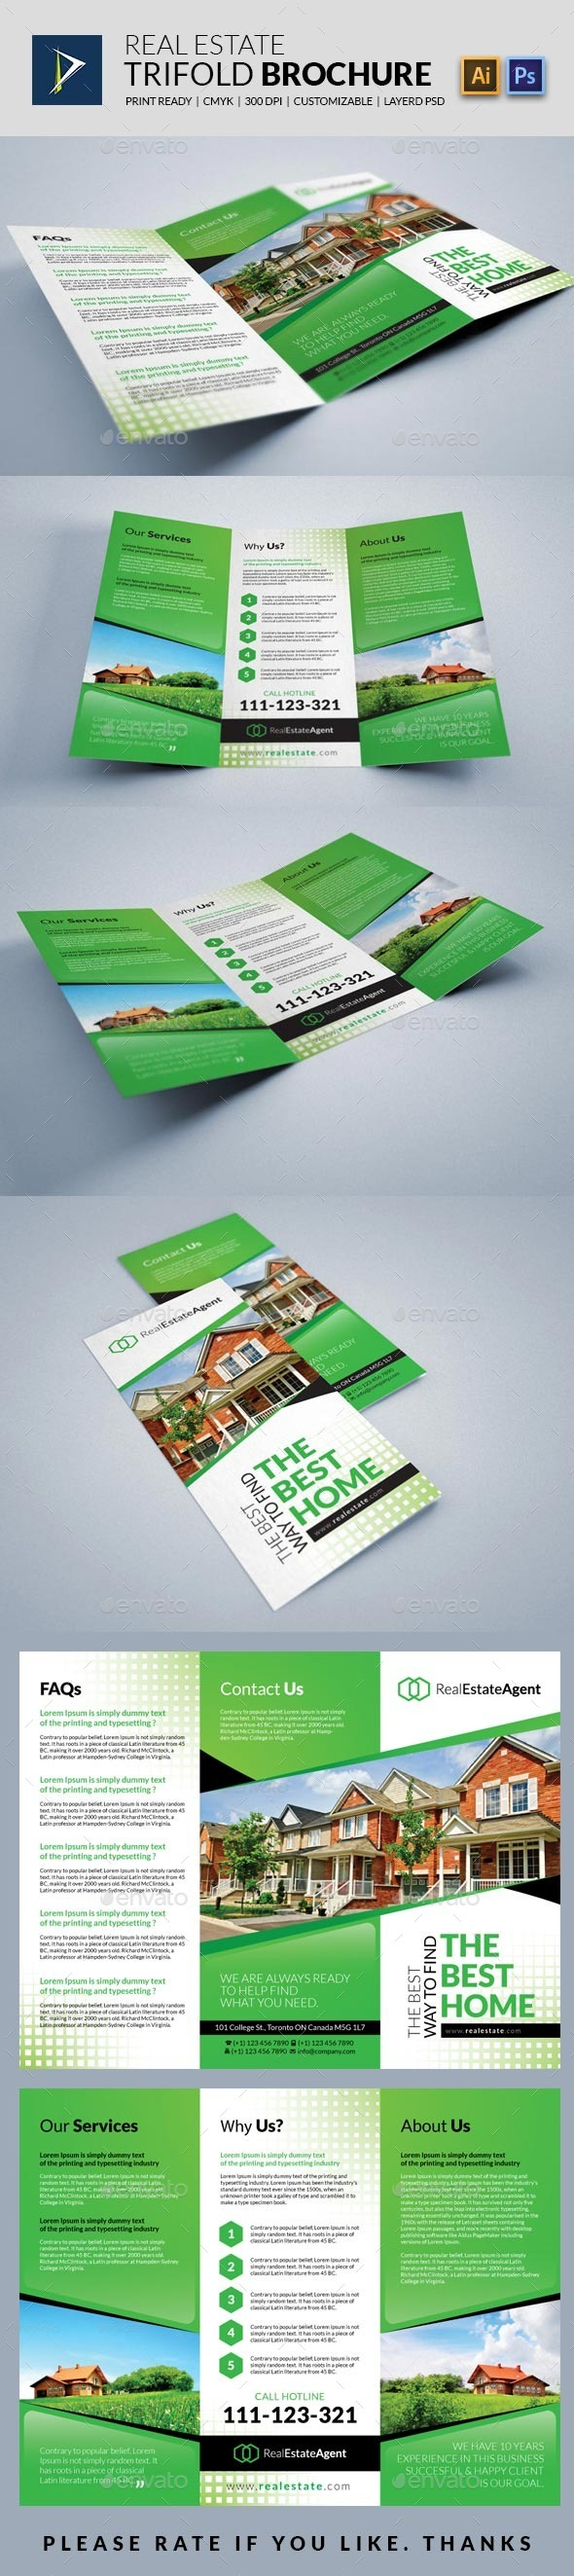 GraphicRiver Real Estate Trifold Brochure 10179921